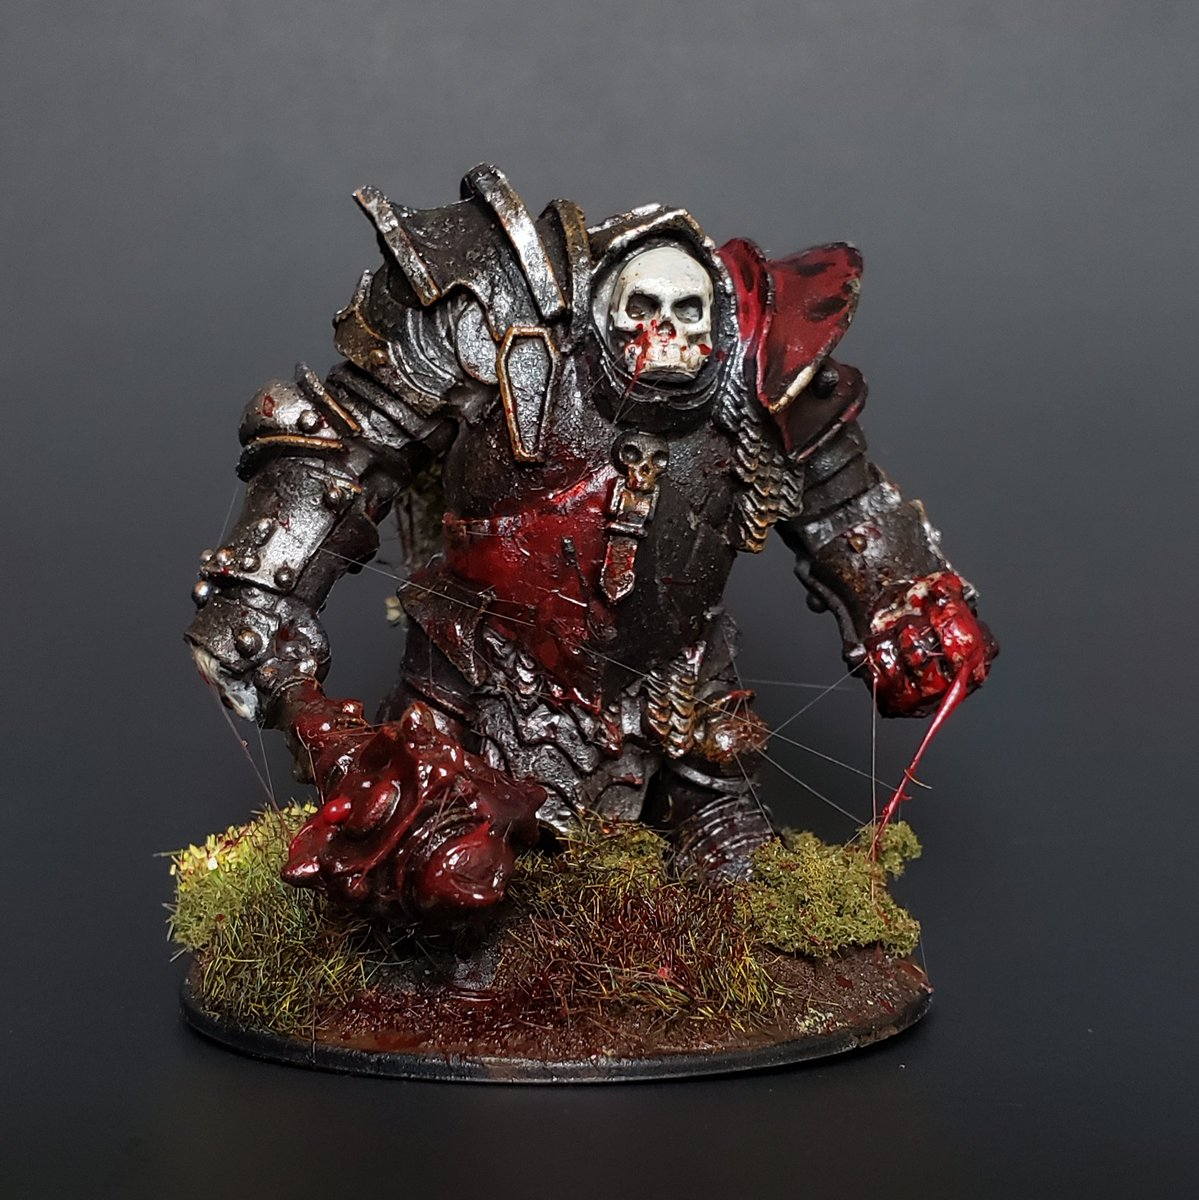 Finished a pretty gory Maggotcrown Ogre Juggernaut from @reapermini! I've been wanting to paint this guy for awhile now and I finally got the chance to so it. #minipainting #miniatures #ttrpg #reaperminipic.twitter.com/OIjsJksj2J